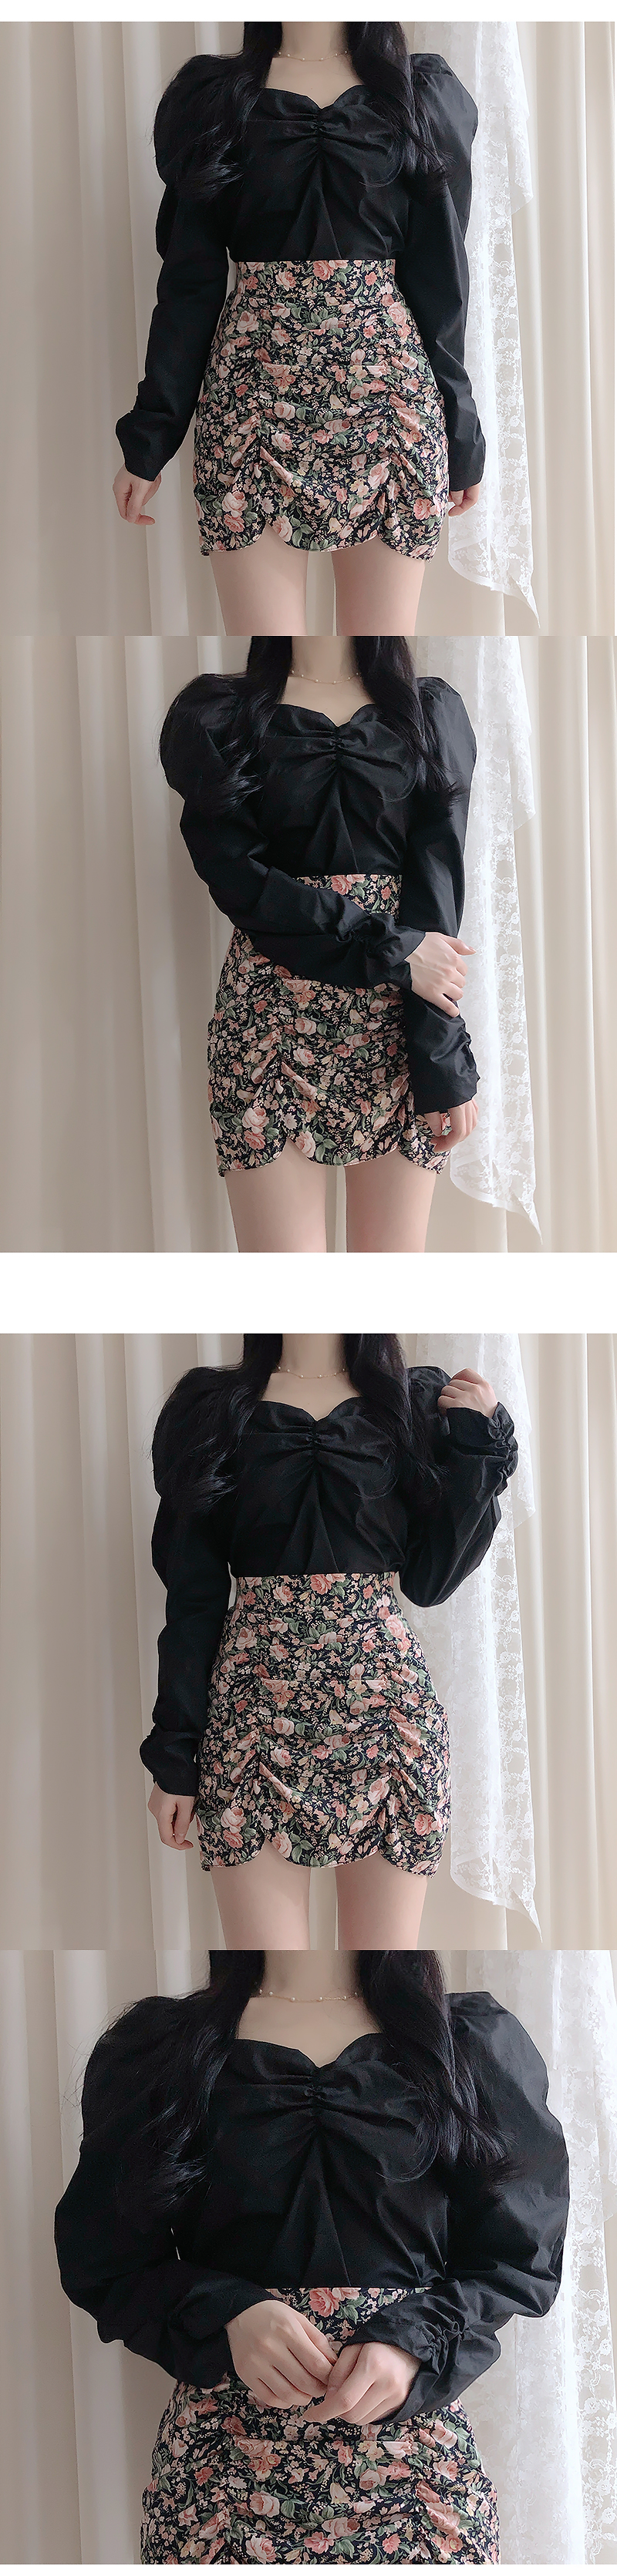 Jolly puffing blouse